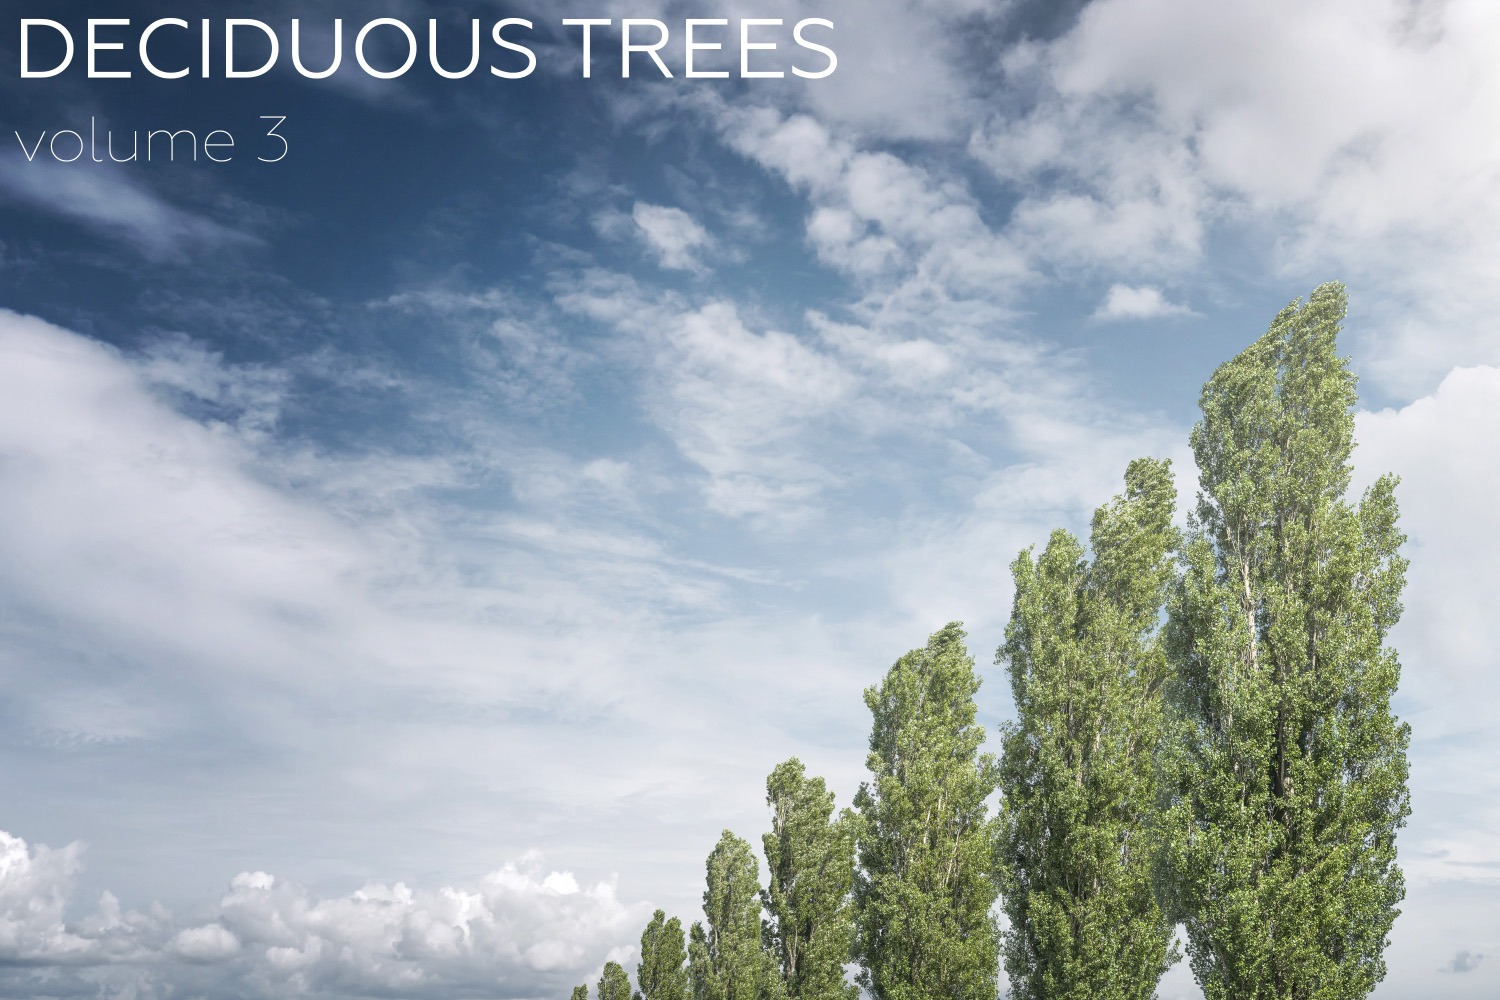 DECIDUOUS TREES Volume 3